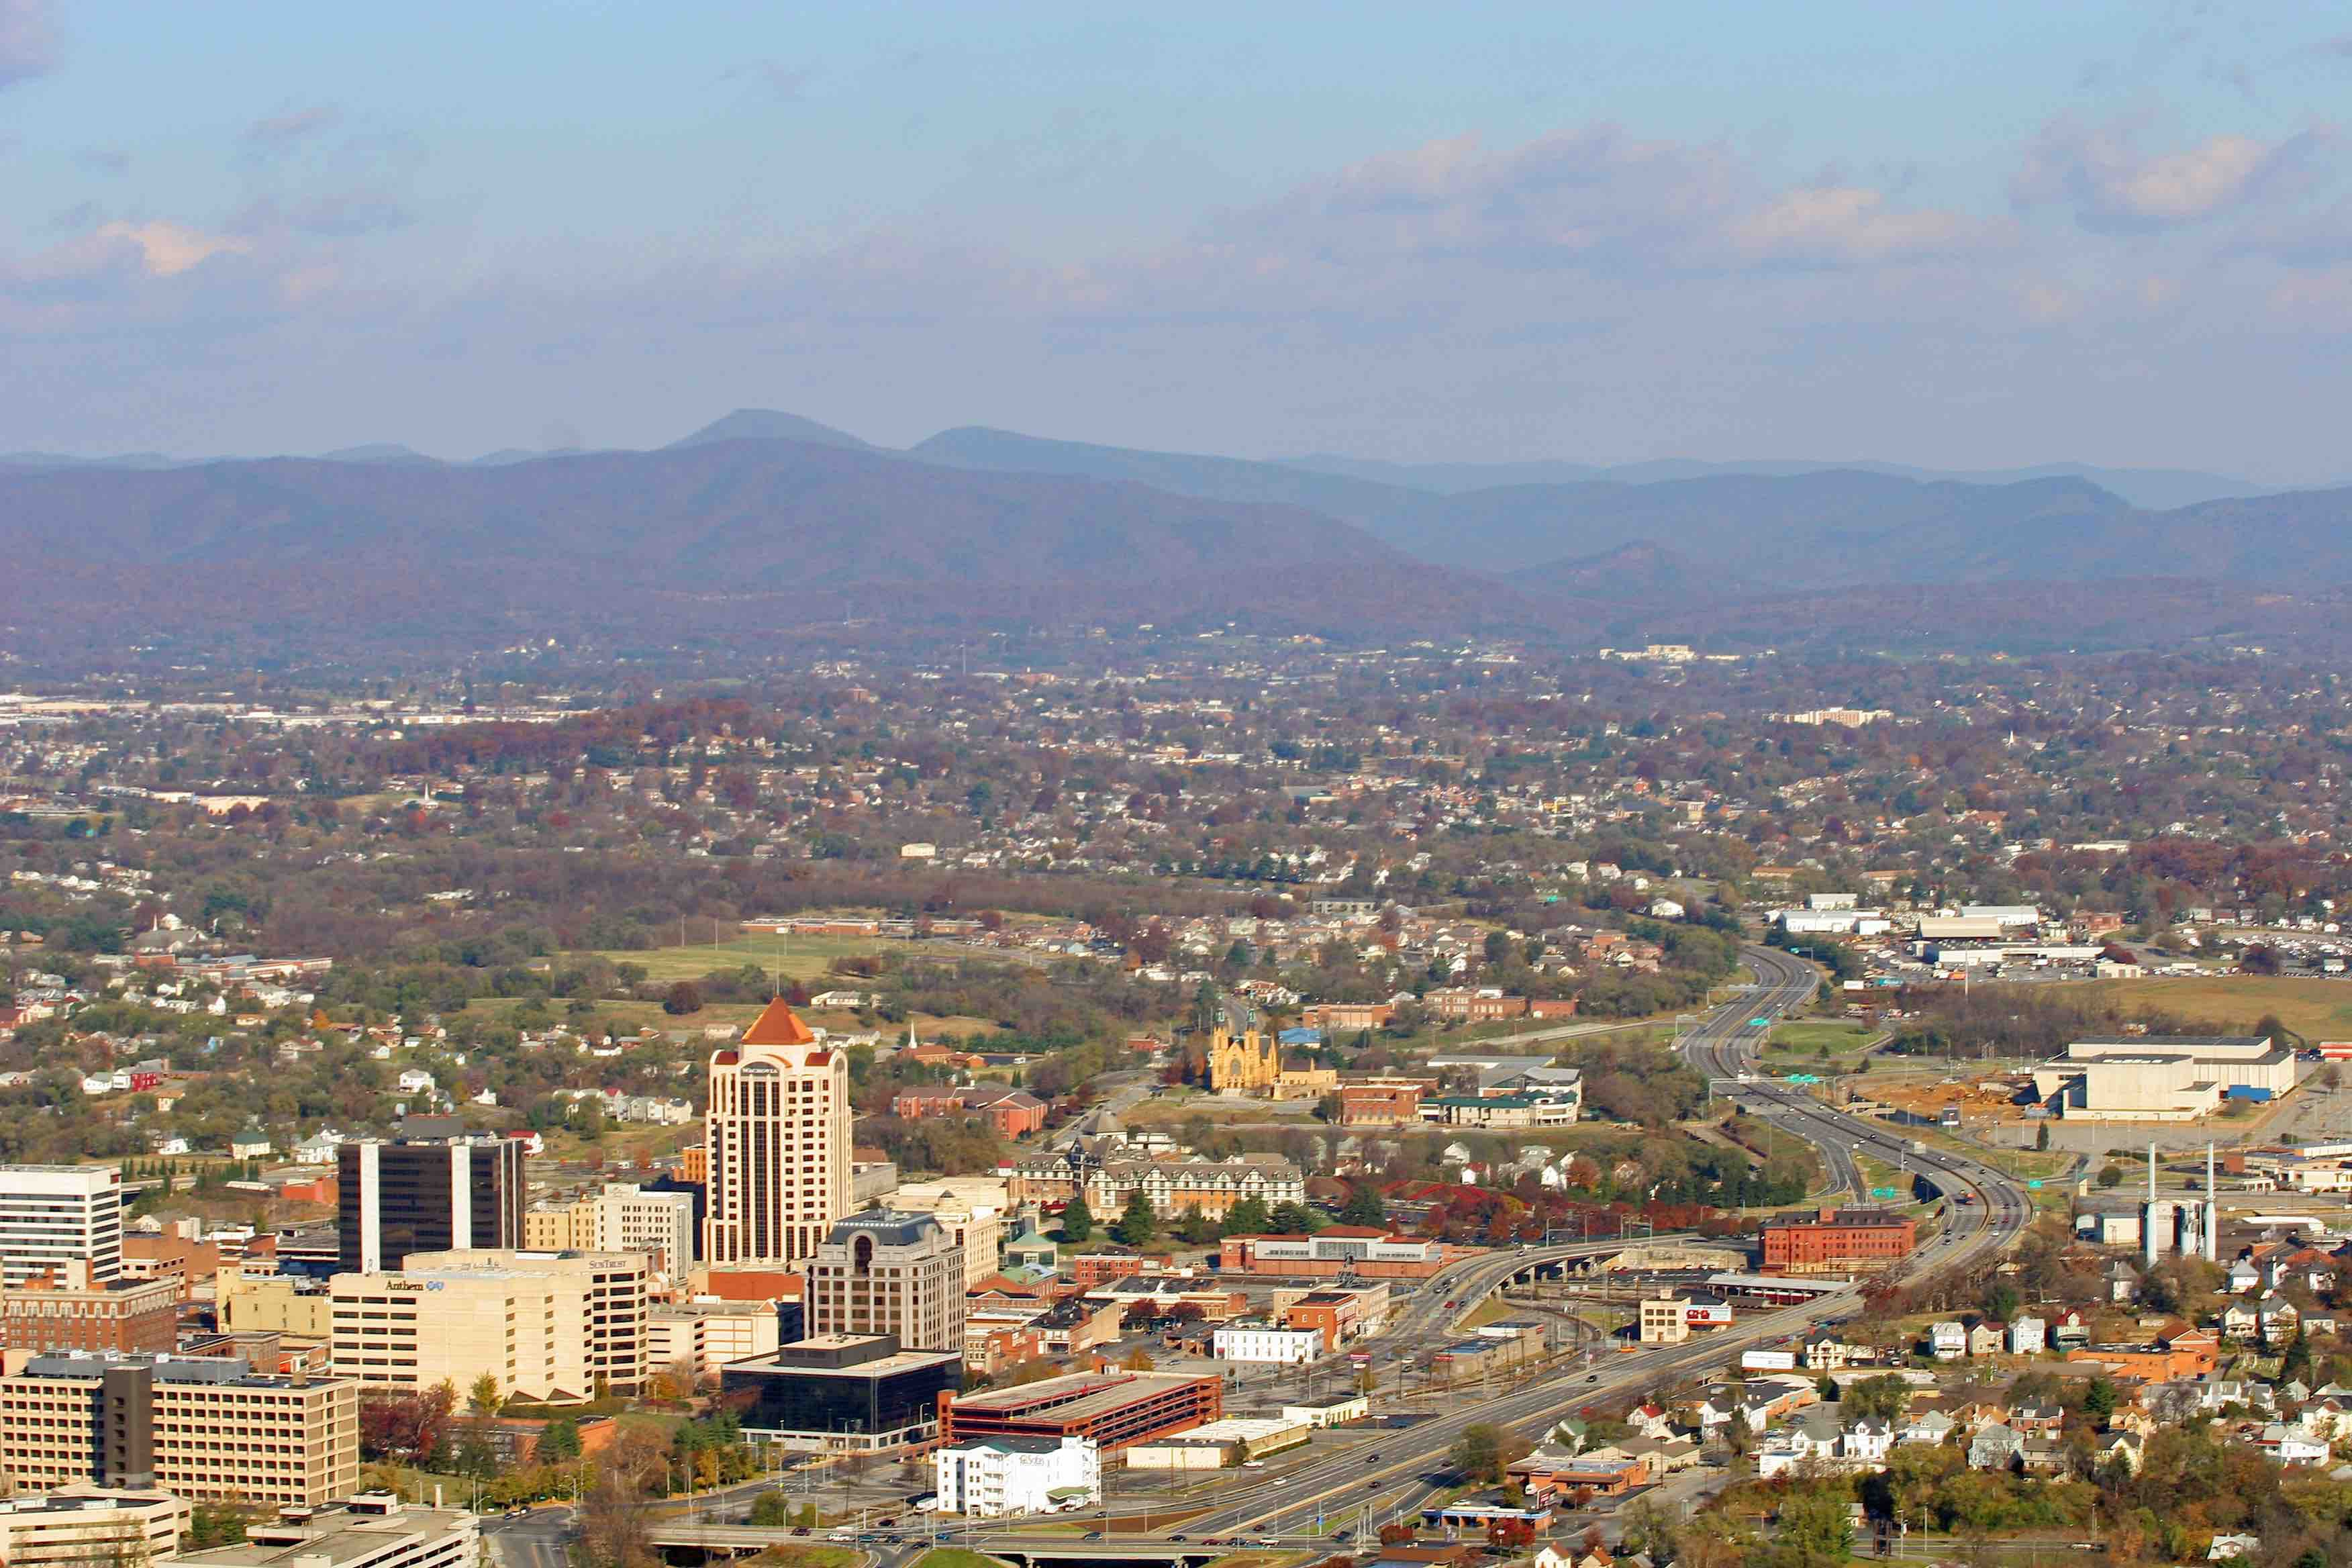 The city of Roanoke, VA